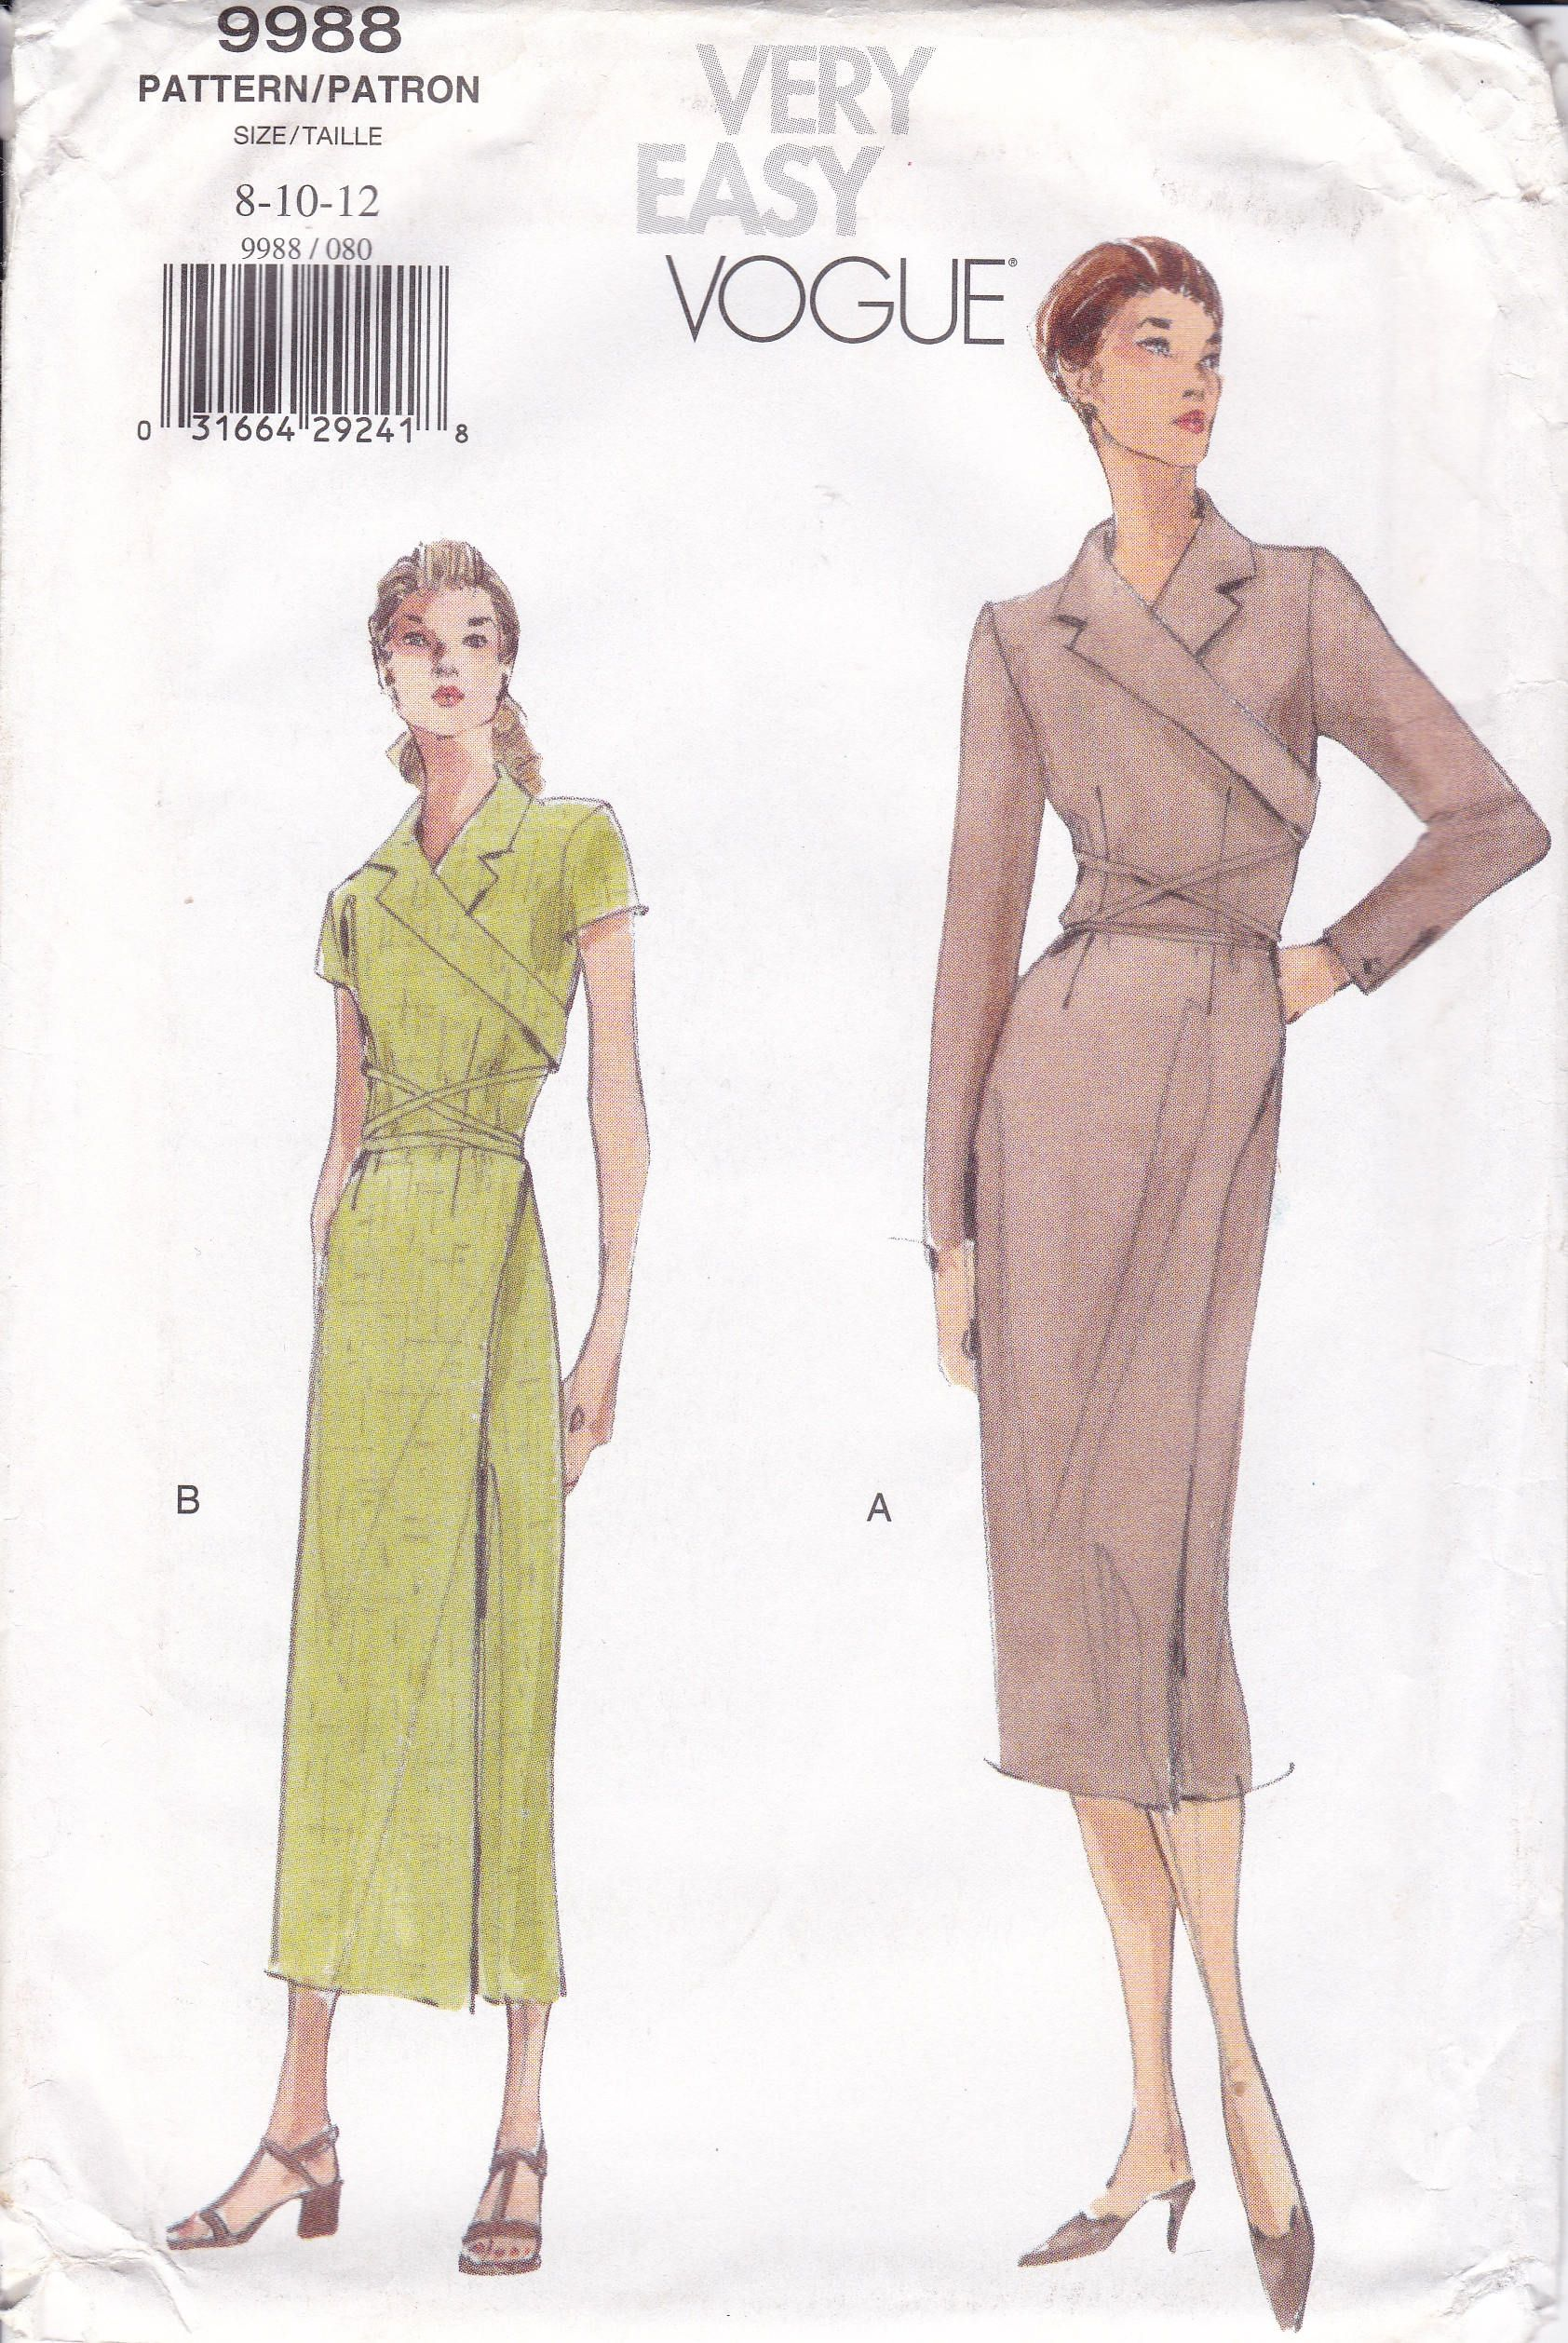 Free Us Ship Vogue Woman 9988 1990s 90s Tapered Wrap Dress Etsy Vogue Sewing Patterns Vogue Pattern Sewing Dresses [ 2516 x 1684 Pixel ]